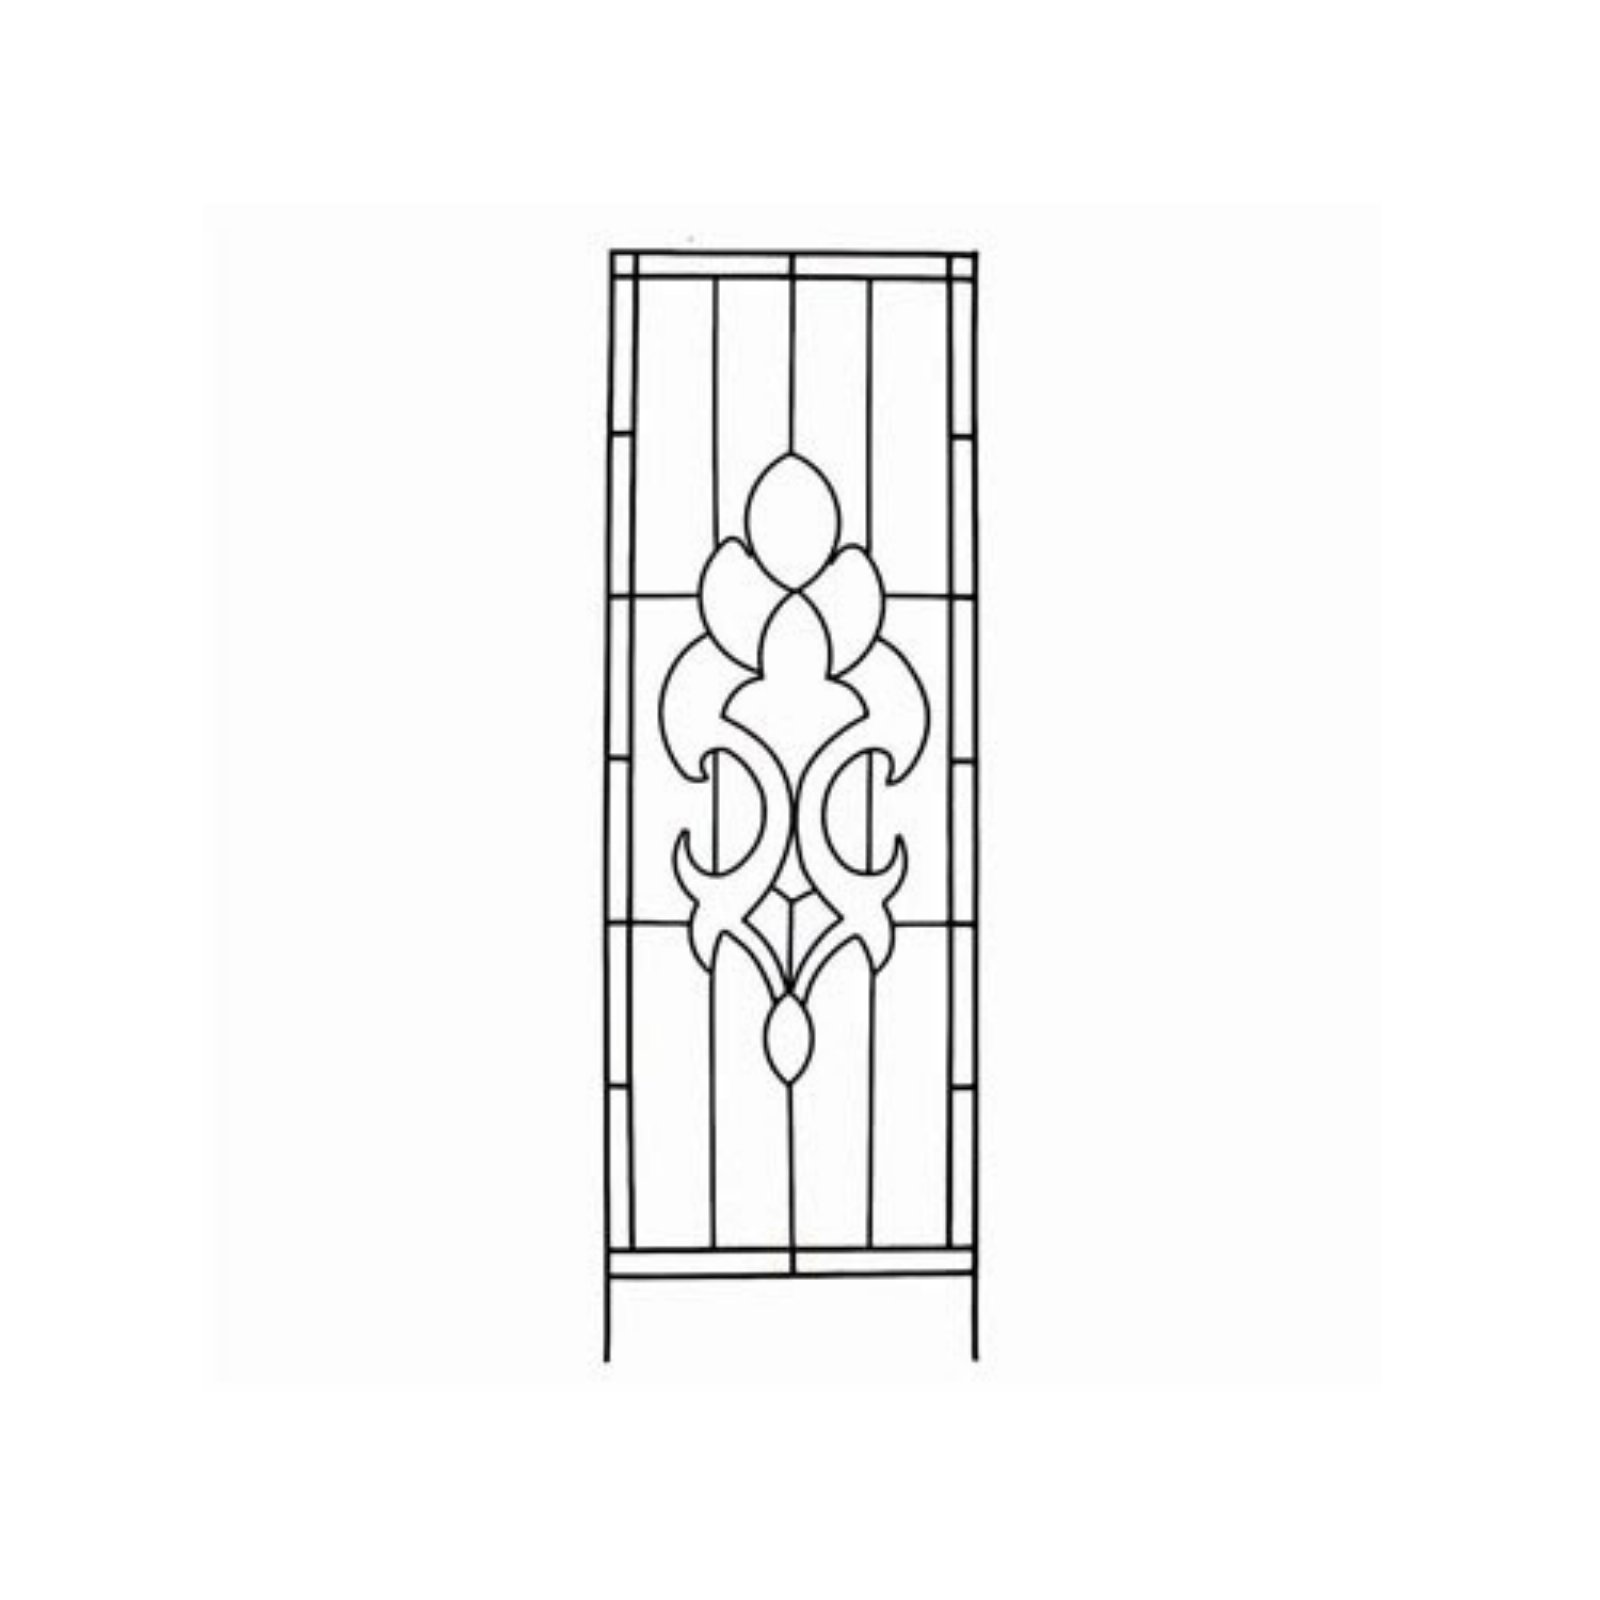 Austram-Griffith Creek Designs Newport Flower Trellis 24 x 72 in. Leather Black by Austram Inc